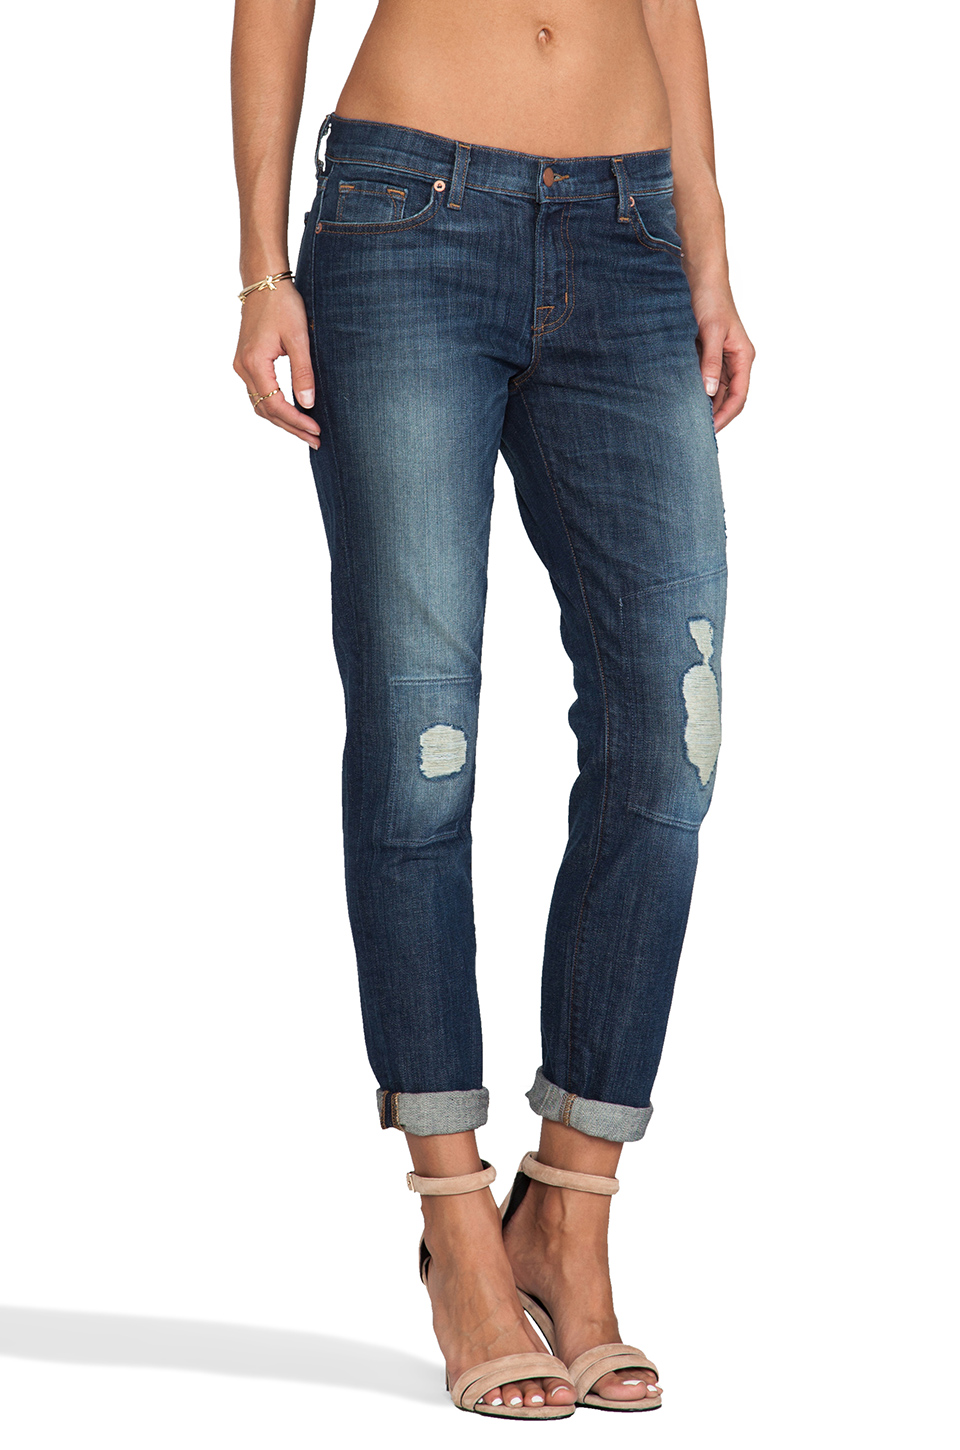 J Brand Midori Patch Boyfriend Skinny in Big Time